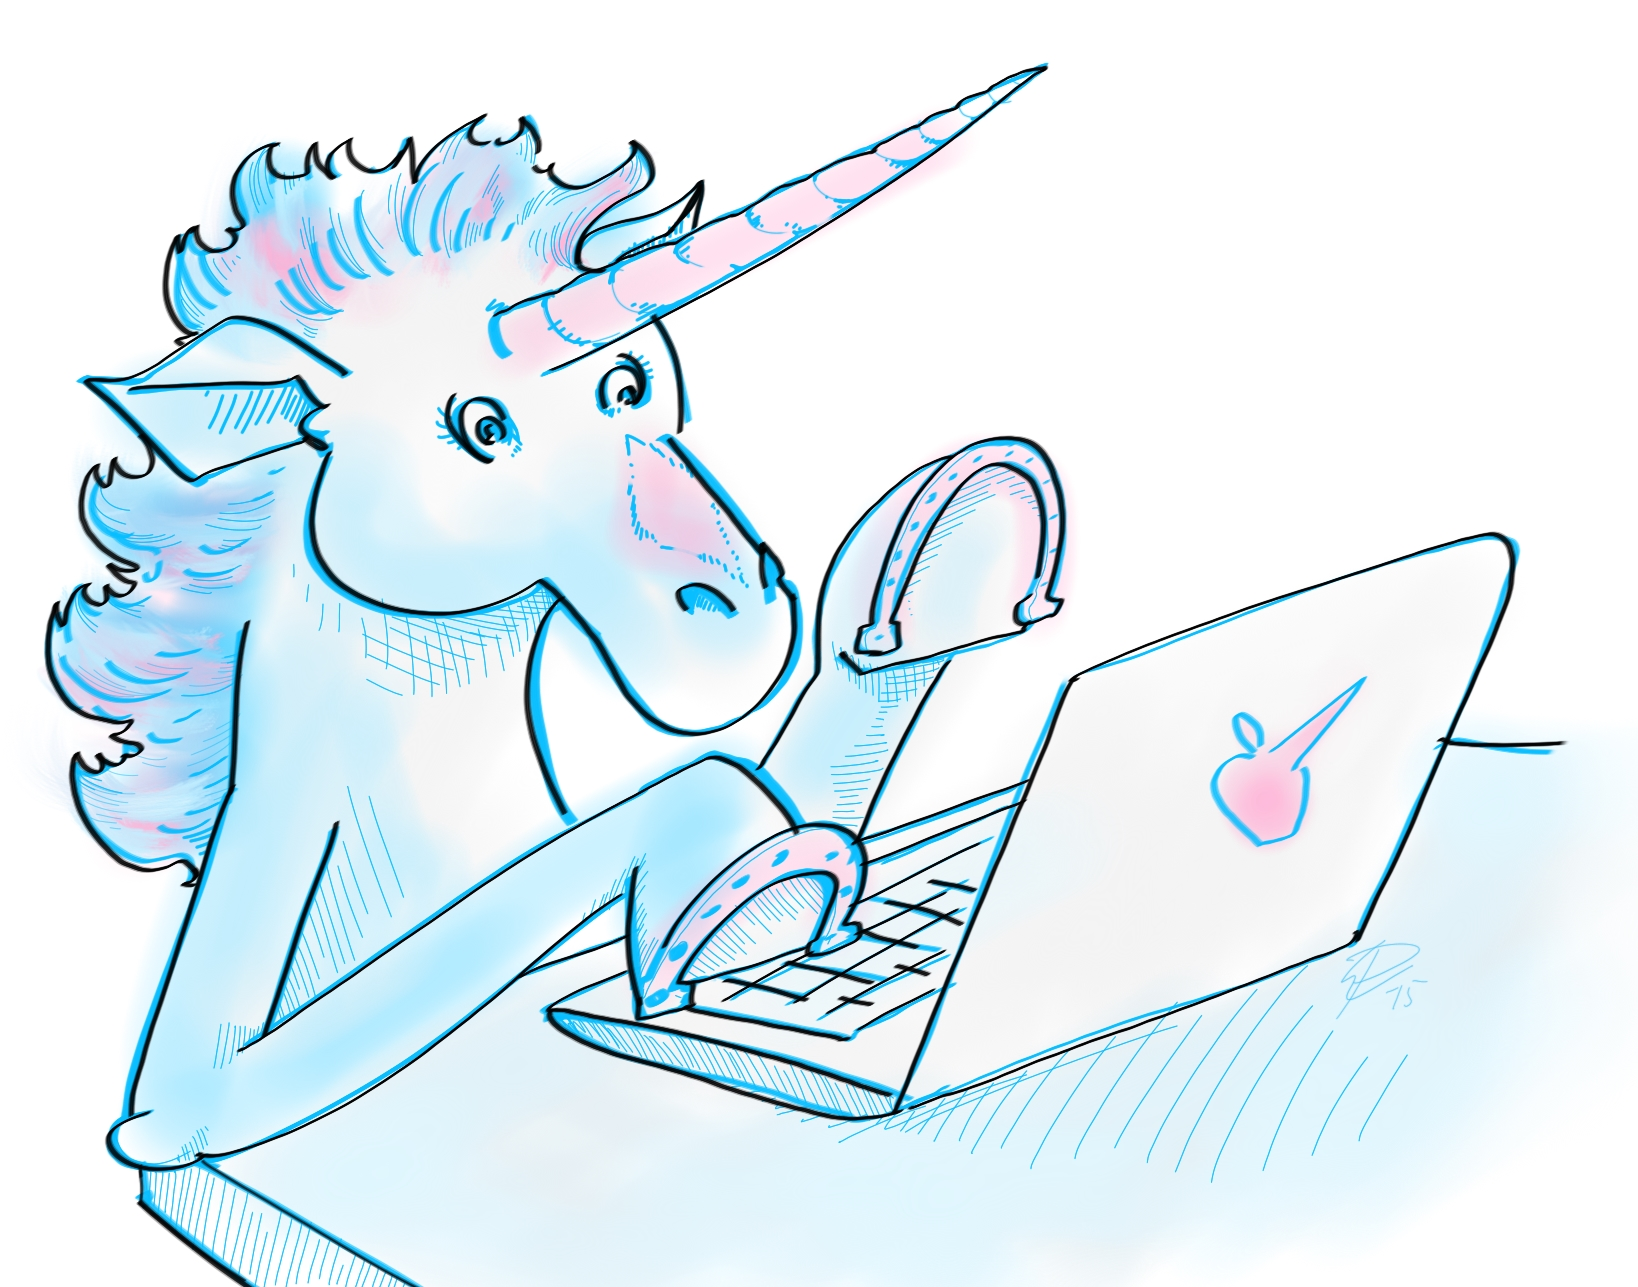 A unicorn on a computer, by request